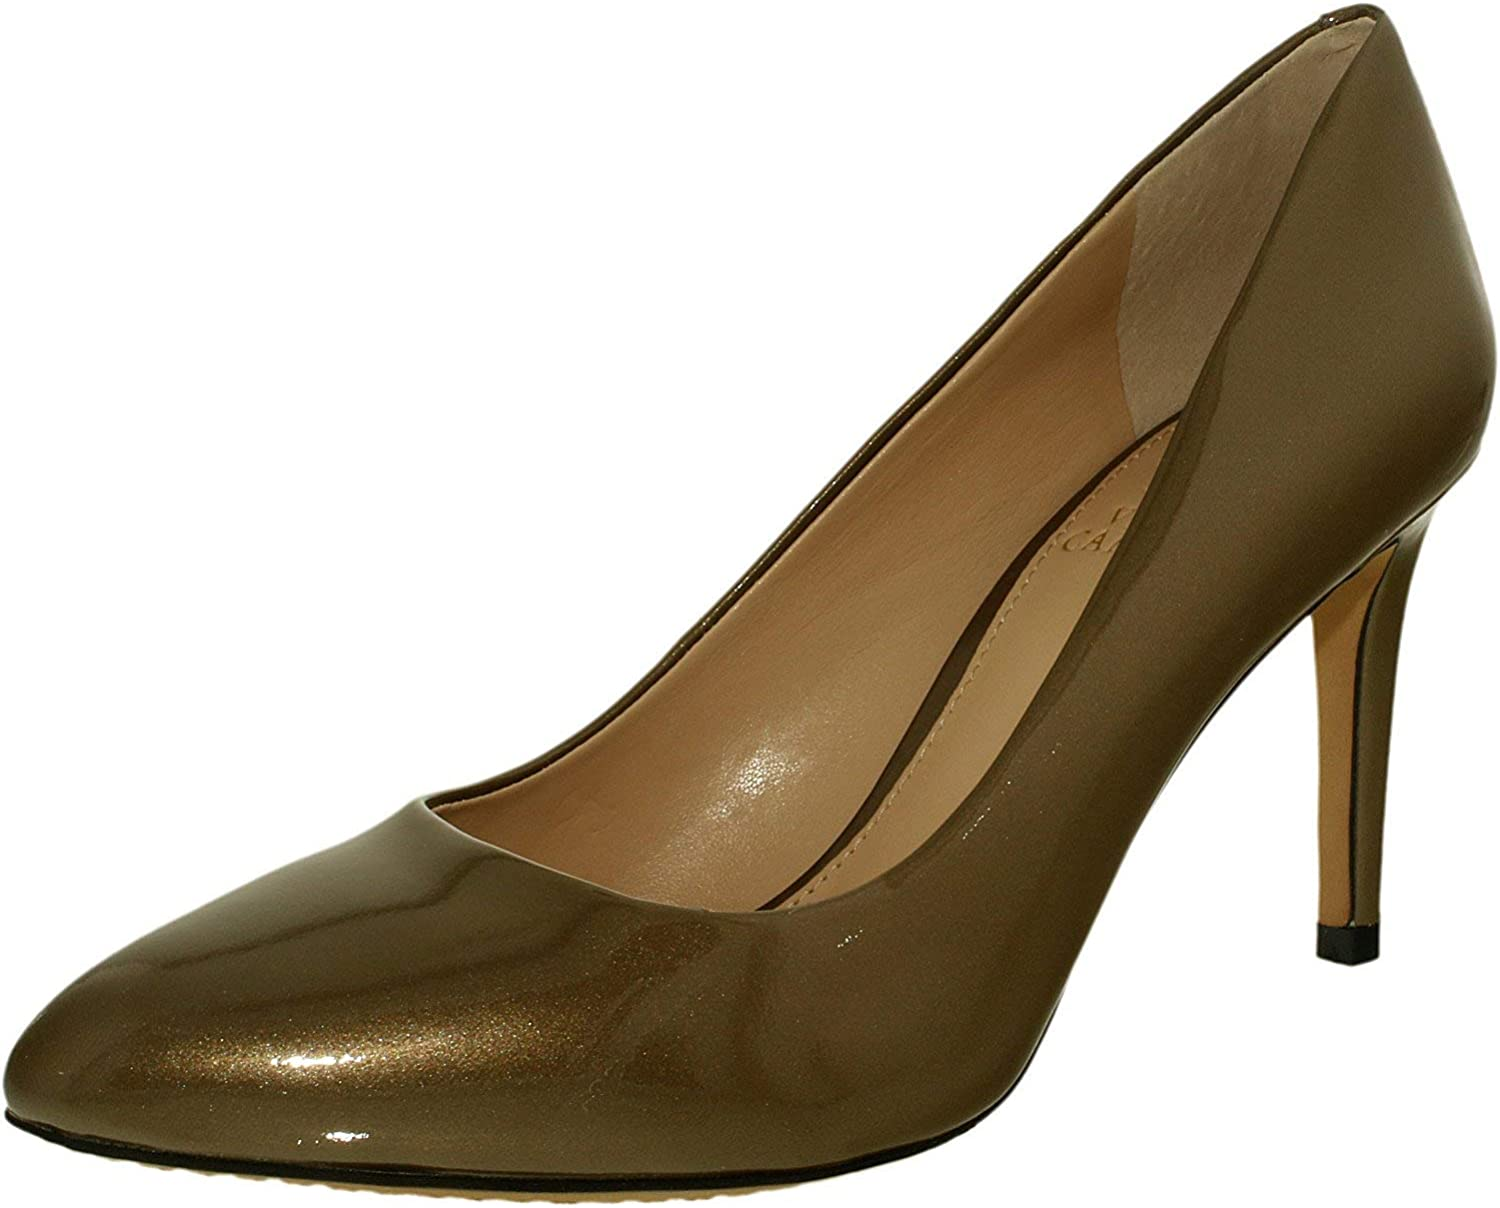 Vince Camuto Women's Langer Patent Ankle-High Pump